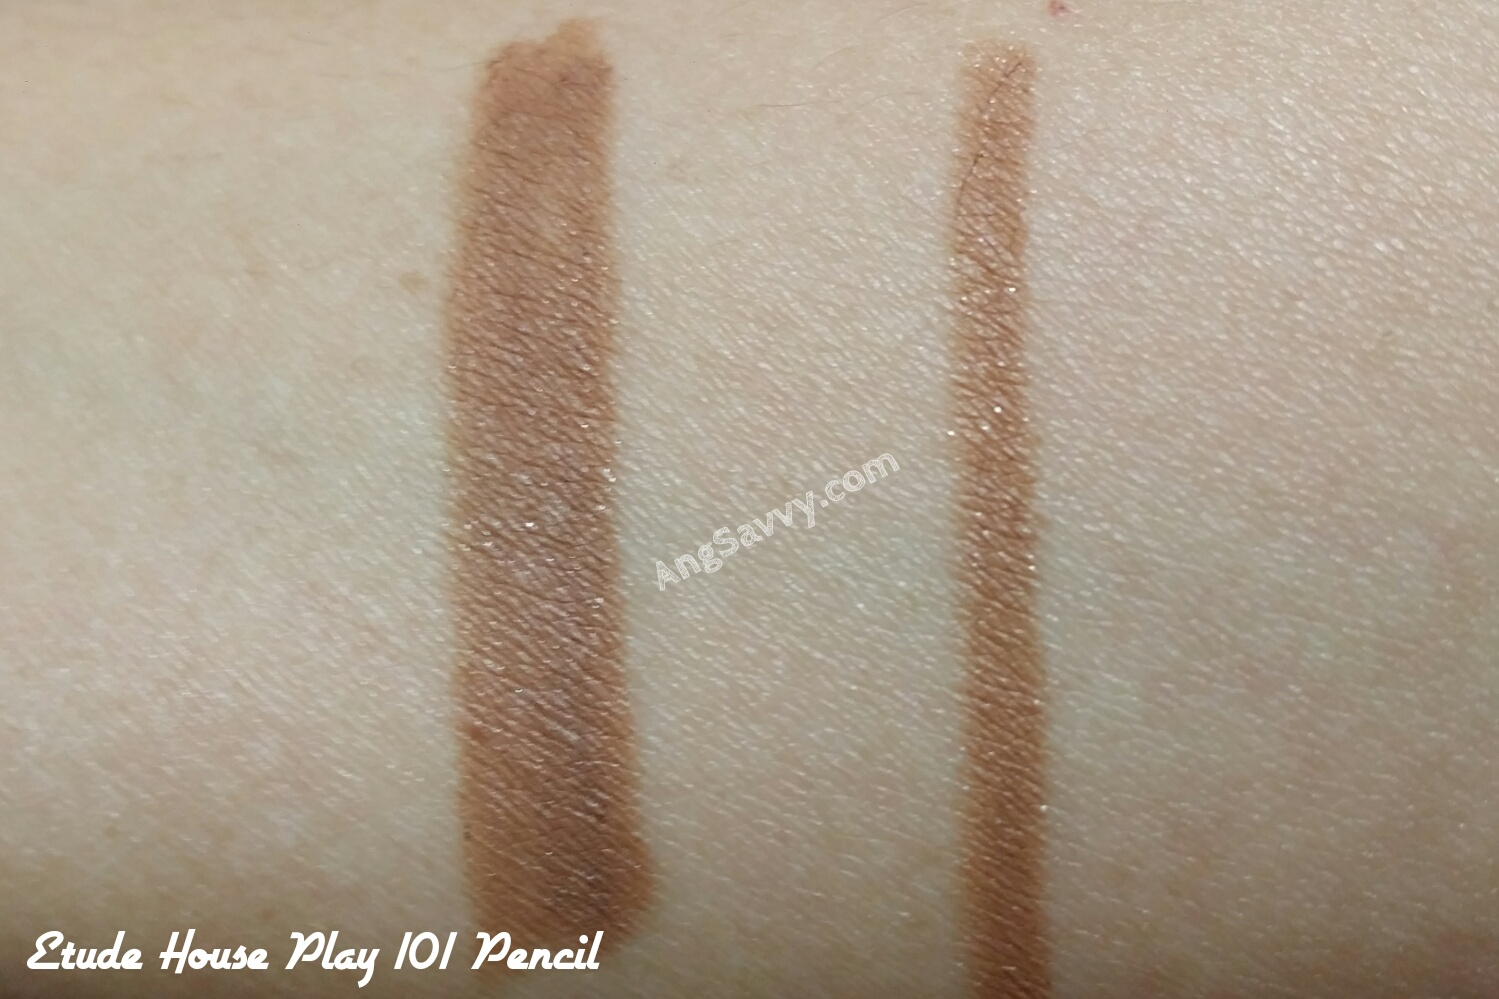 Etude House Play 101 Pencil 41 Swatch